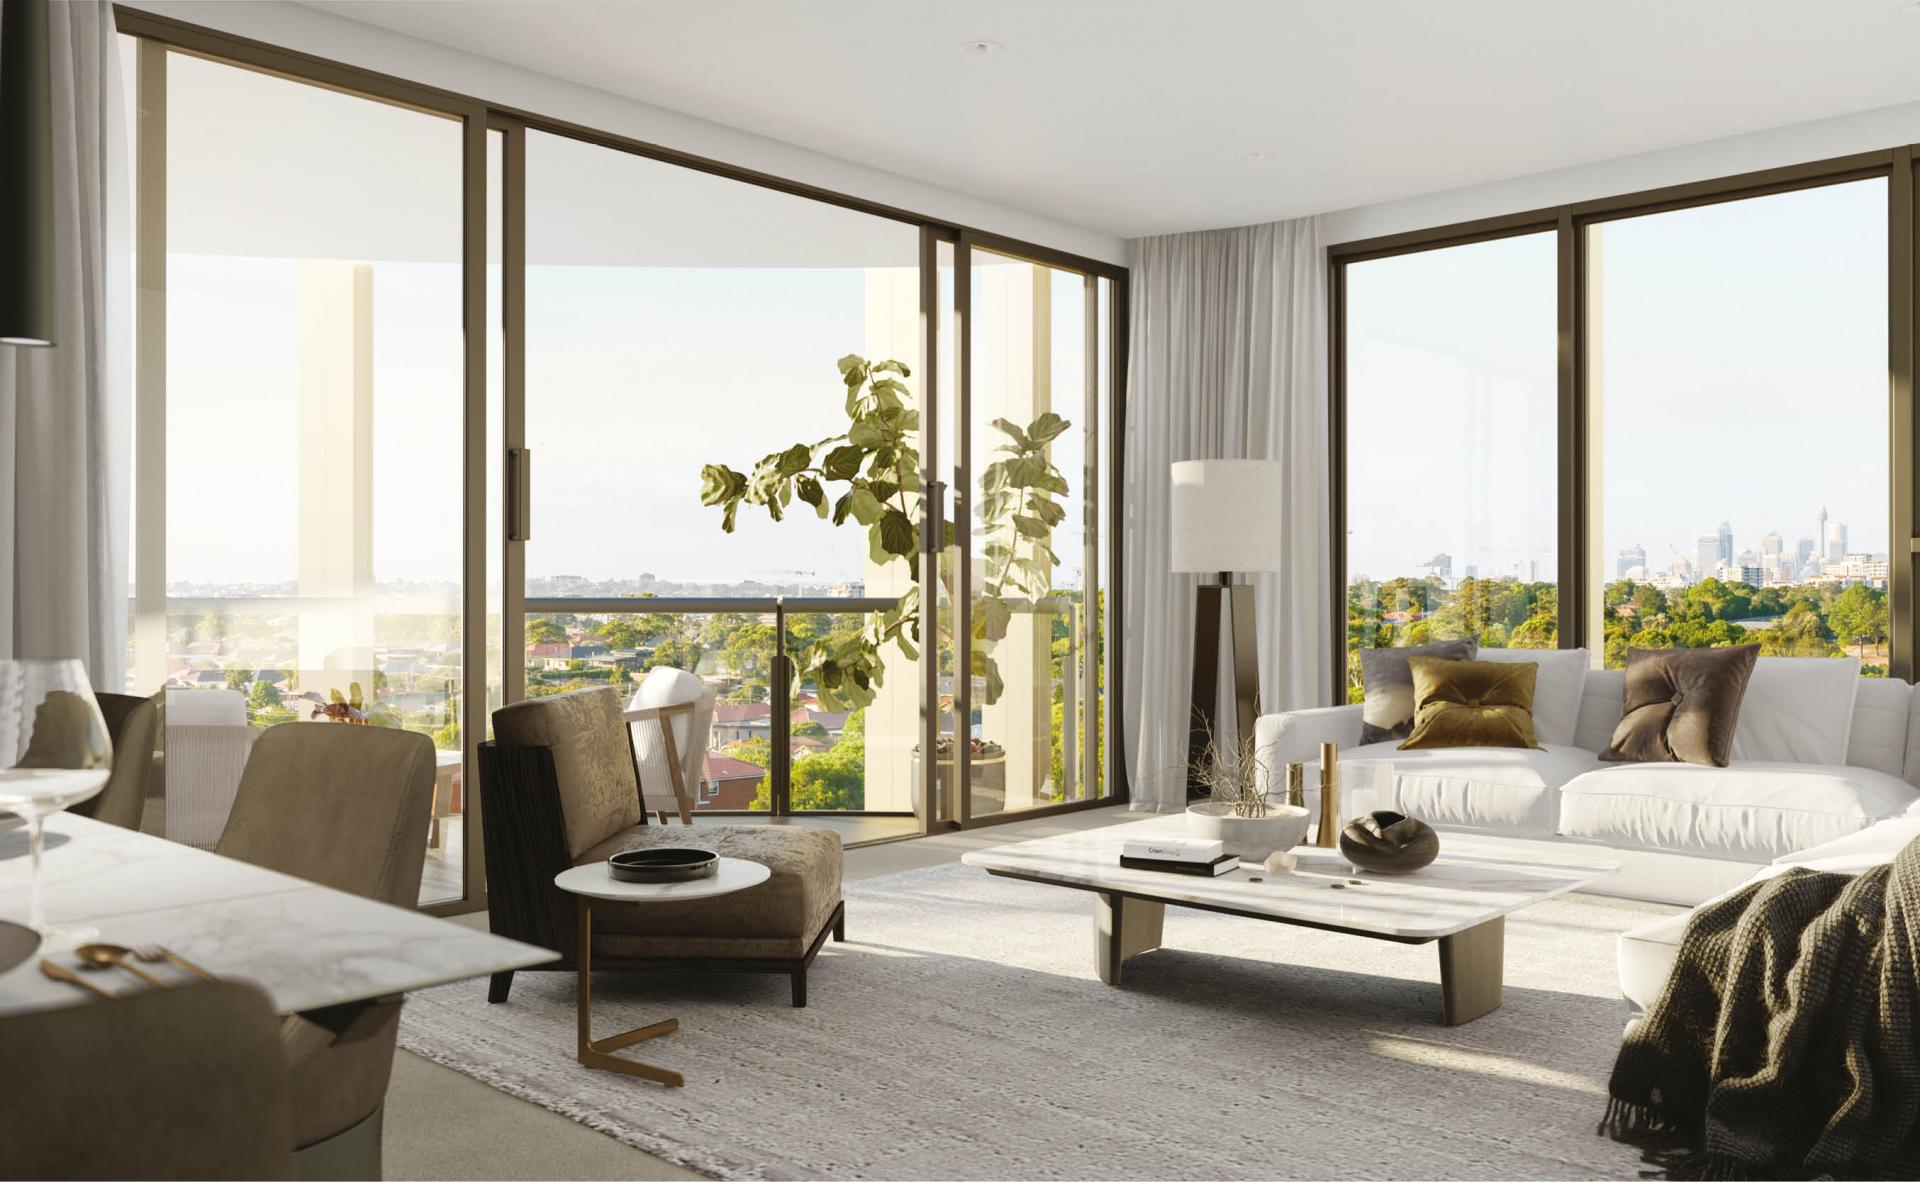 Golf Lovers Cannot Miss This Brand New Residential Community in Sydney